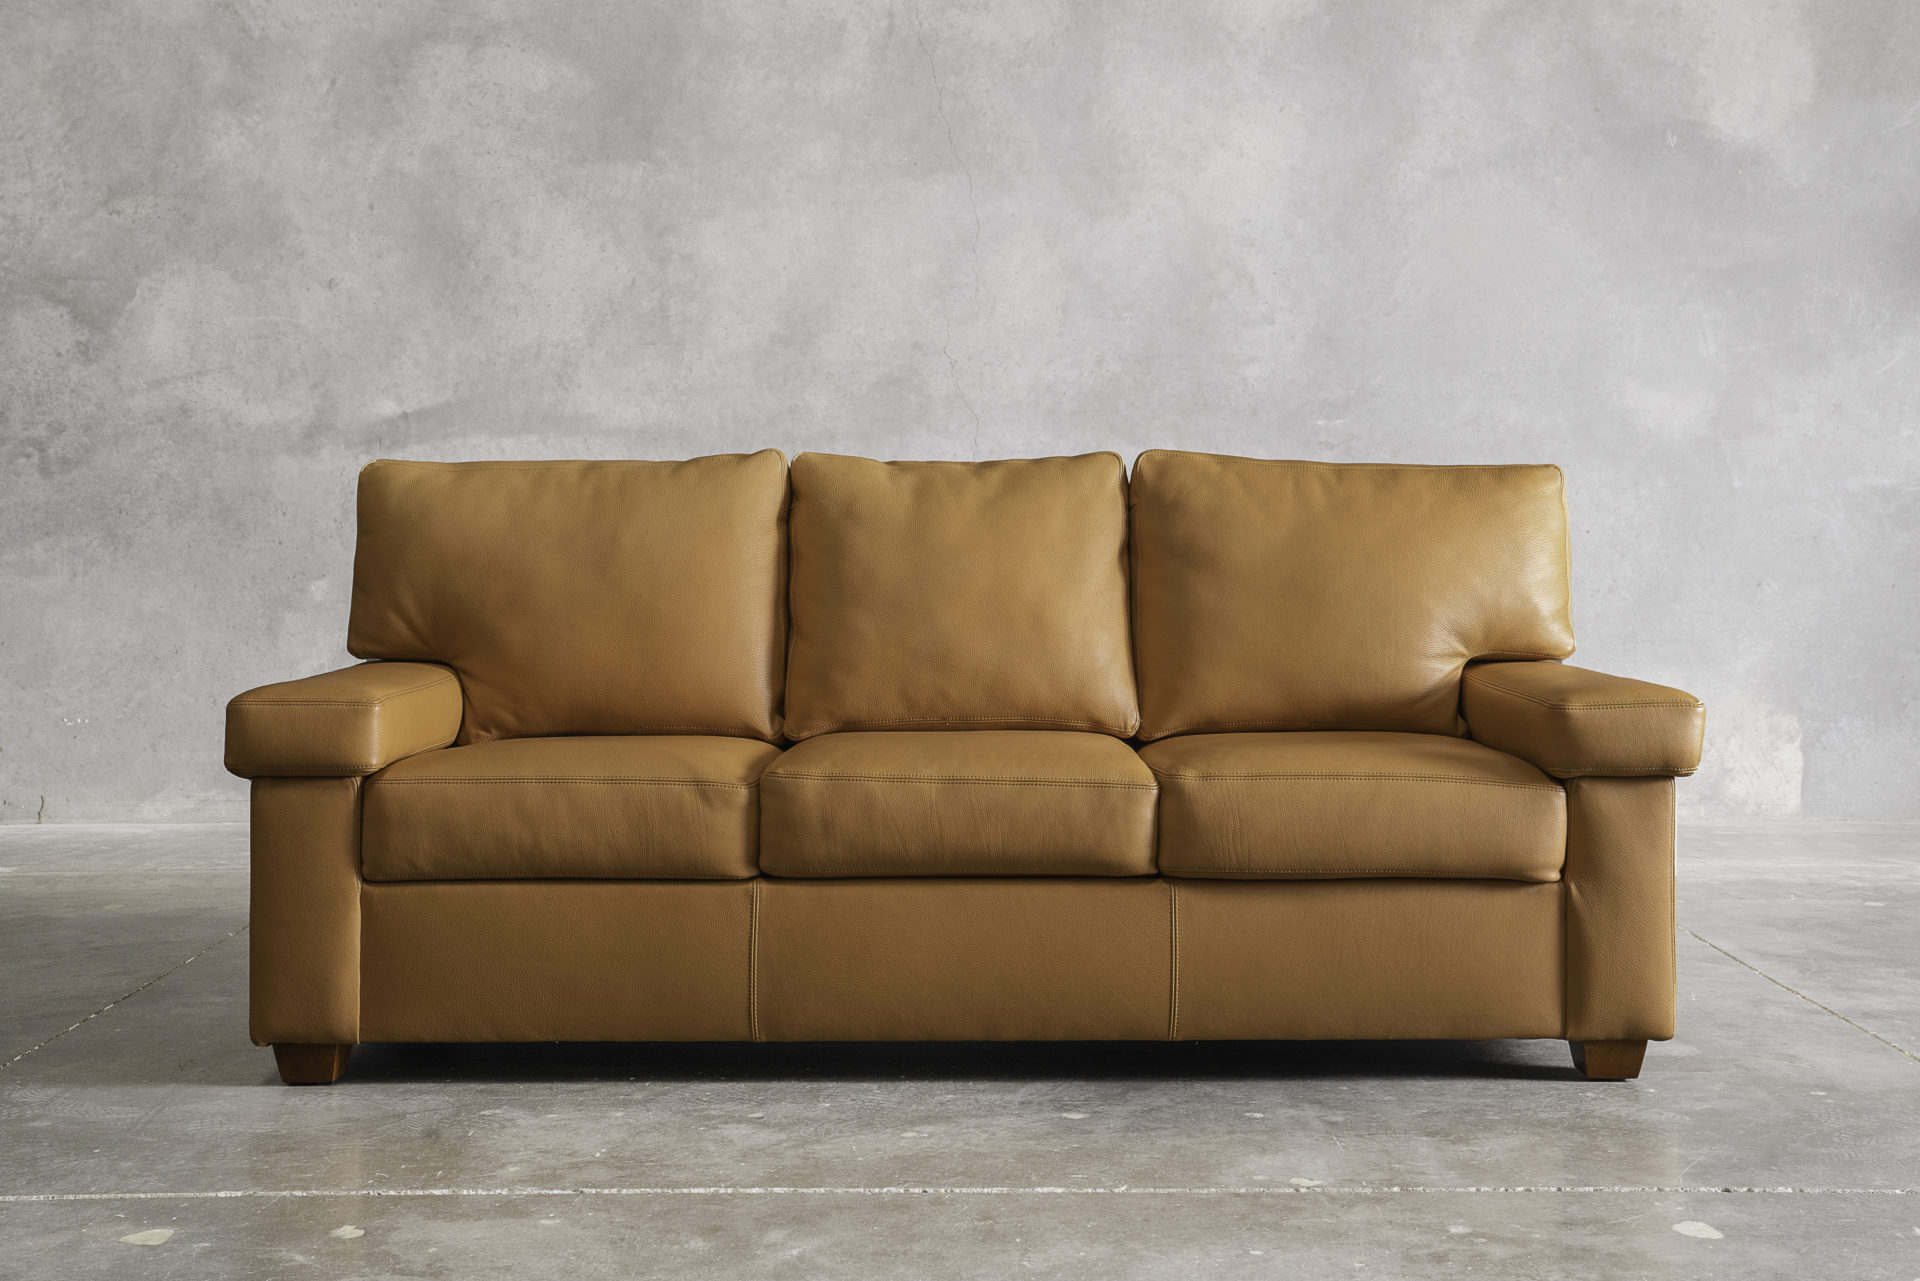 Barcelona Sofa Creative Leather